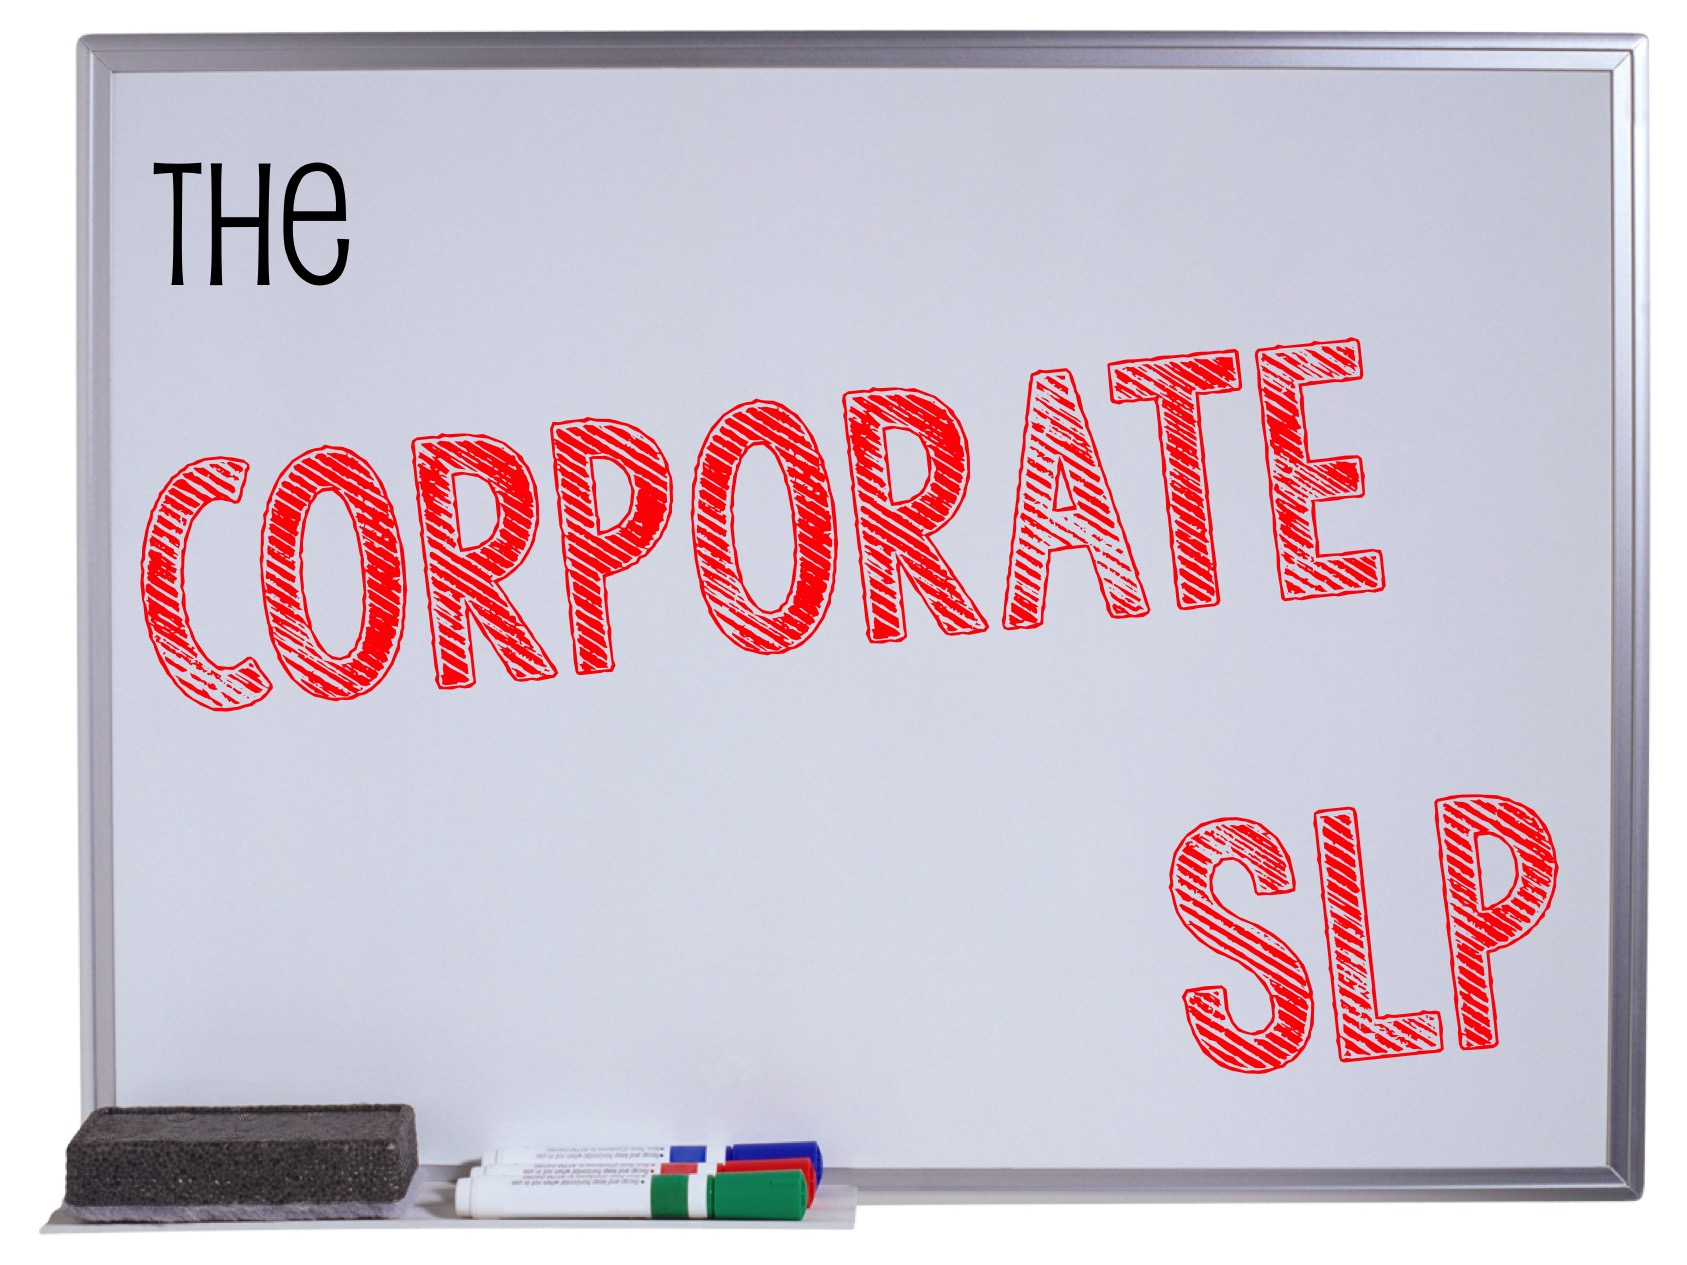 The Corporate SLP?